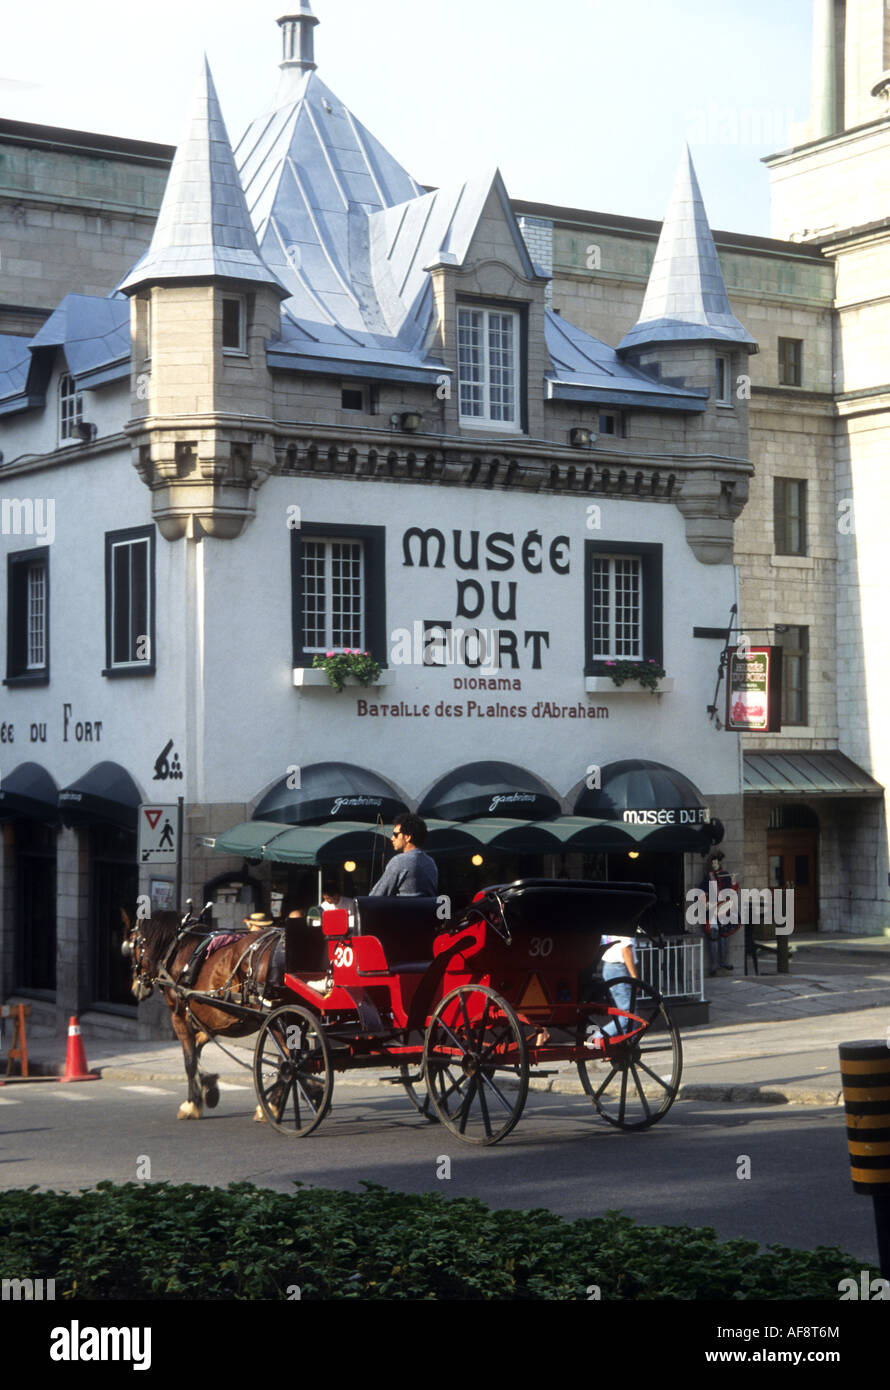 The Fiacre or horse drawn carriage is a popular way to visit the tourist attractions in Quebec City,Canada - Stock Image